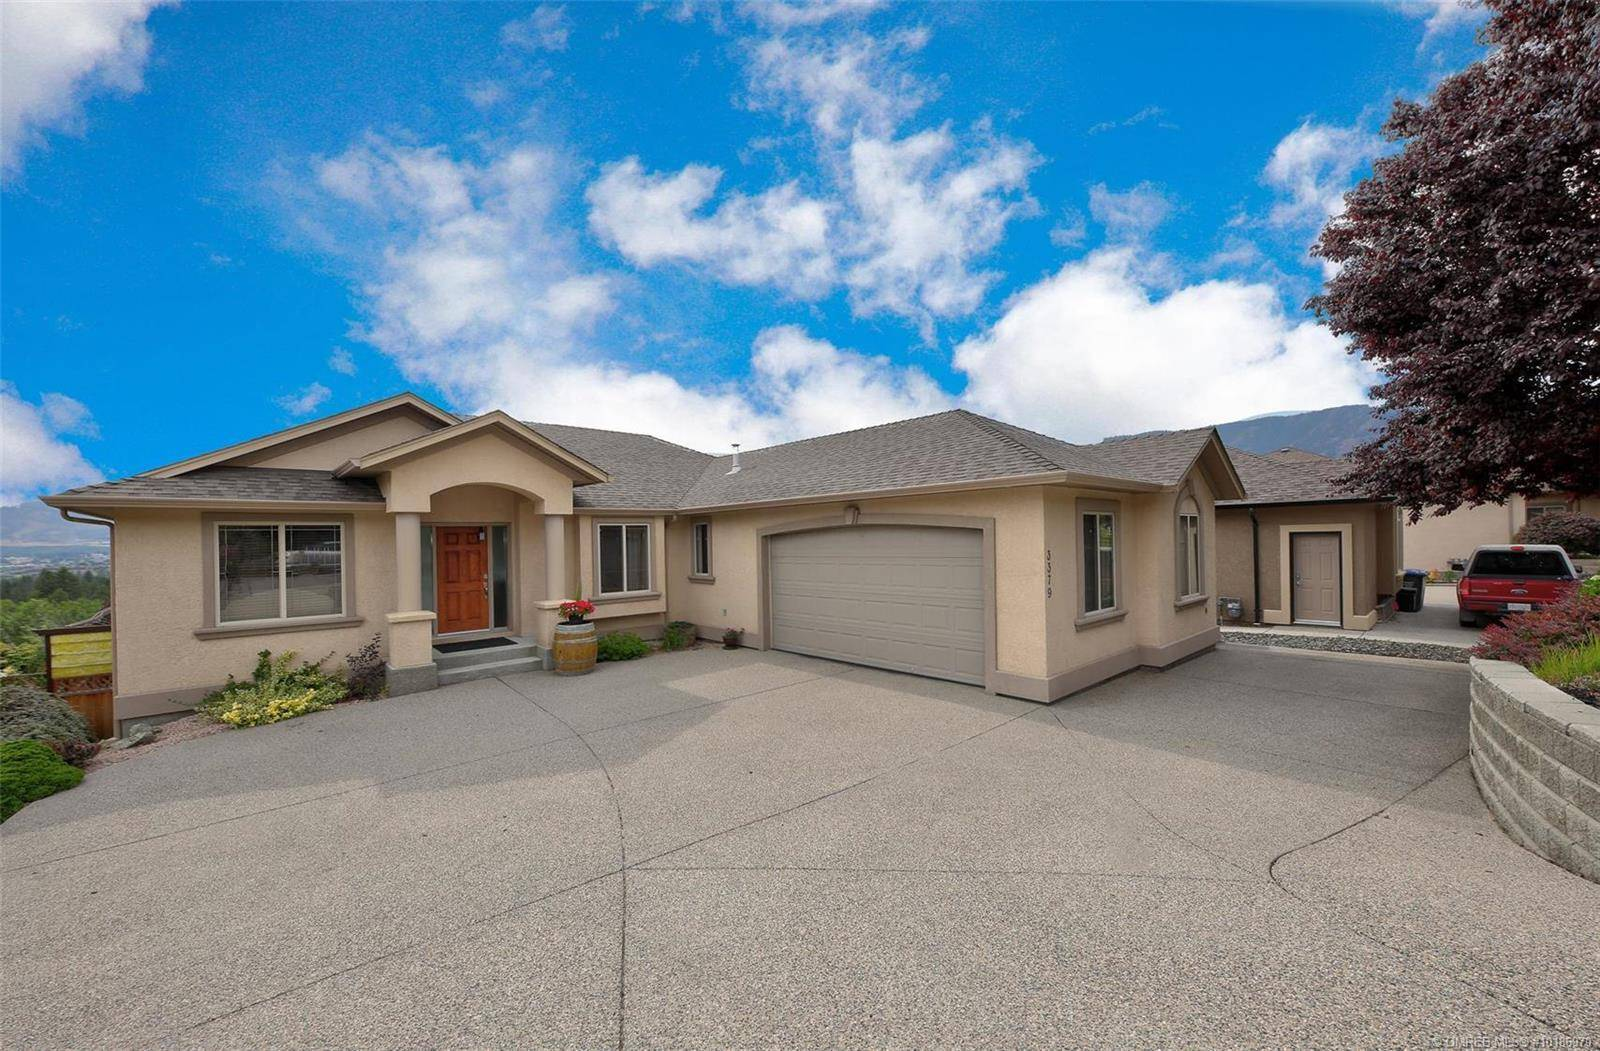 House for sale at 3379 Merlot Wy West Kelowna British Columbia - MLS: 10186970